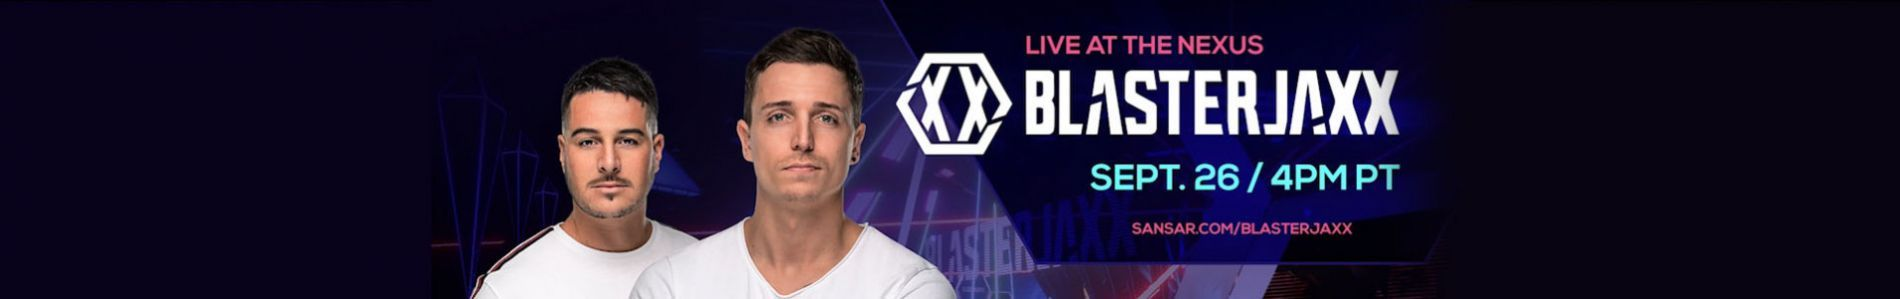 Blasterjaxx gave a virtual reality concert in Sansar